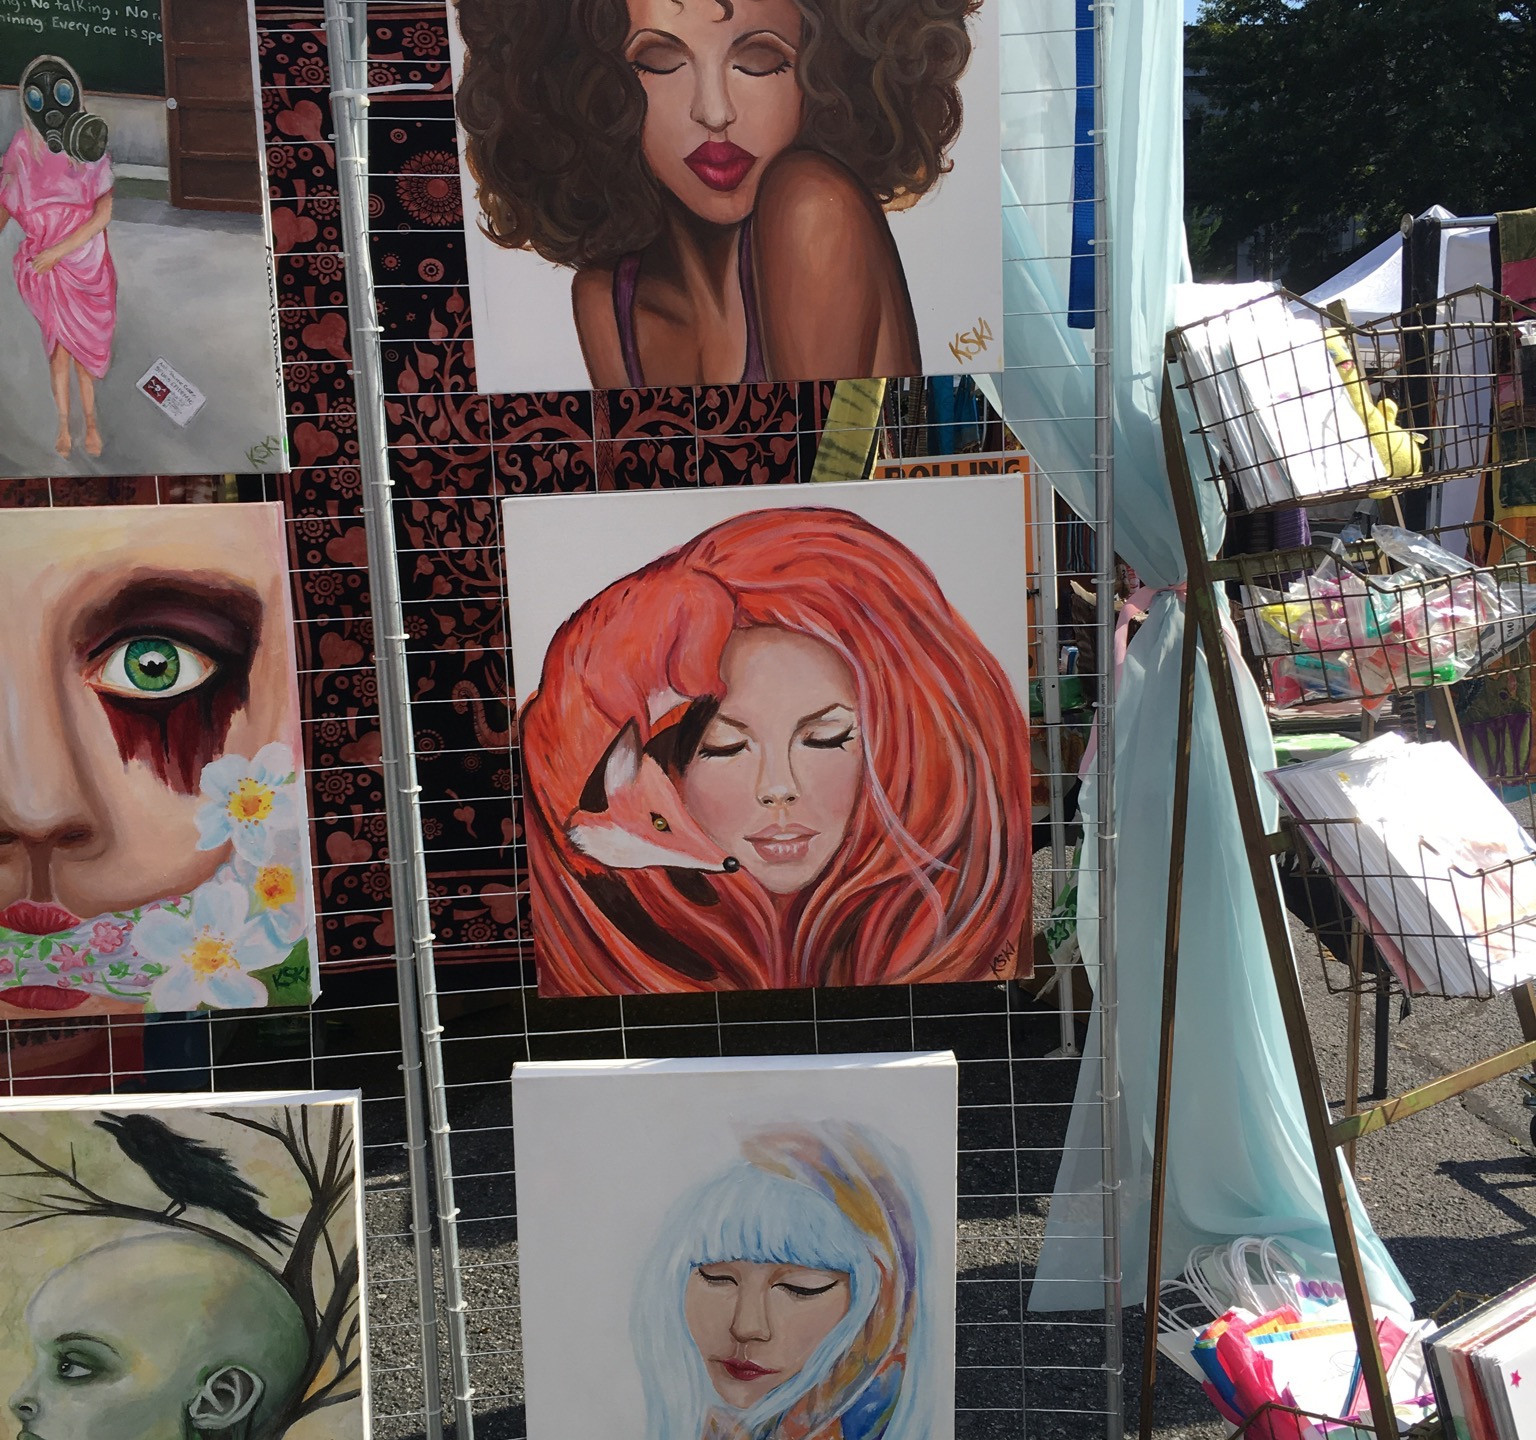 Krissy Whiski Art Show tent craft fair booth foxy lady purrfect cat lady koi asian, black, african american, red head, ginger beautiful women all race paintings